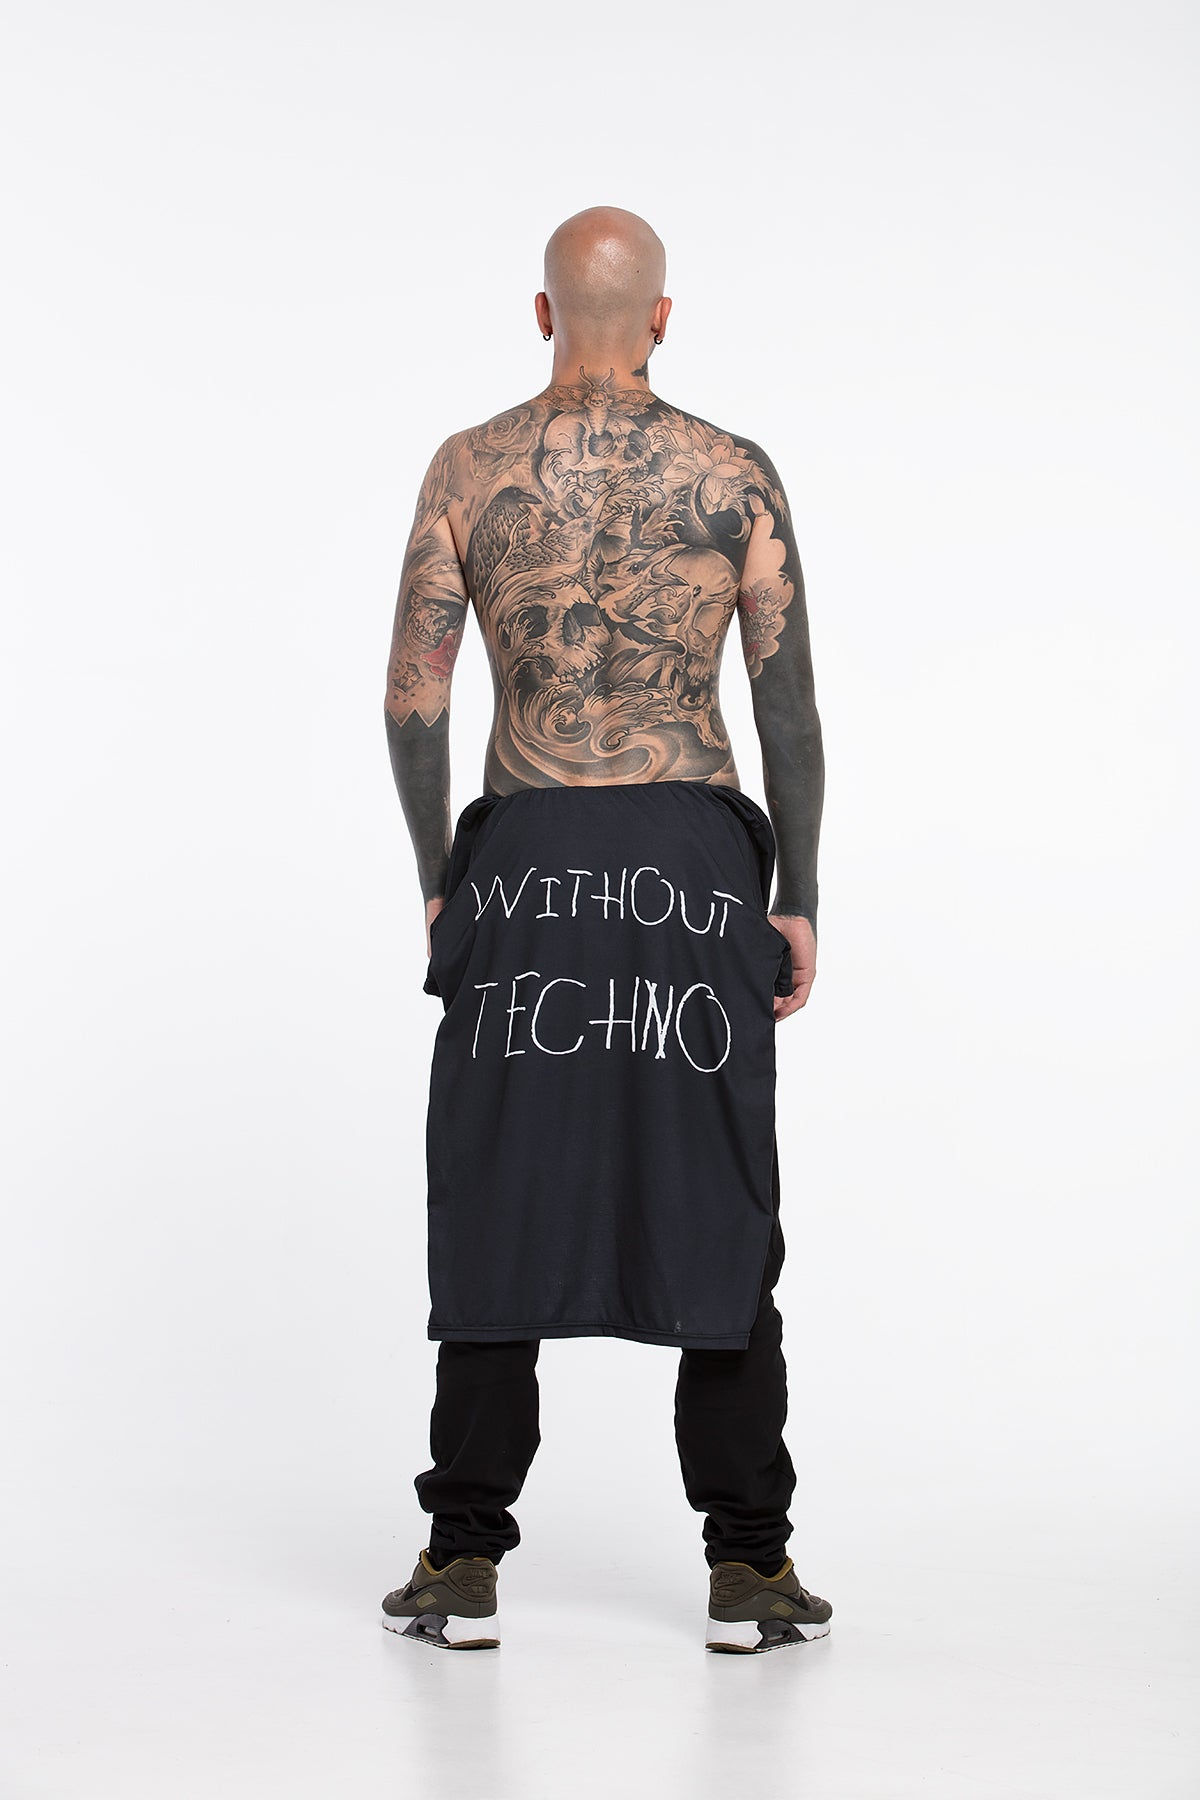 Party is Shit / Without Techno. - oversized T-shirt [Black]